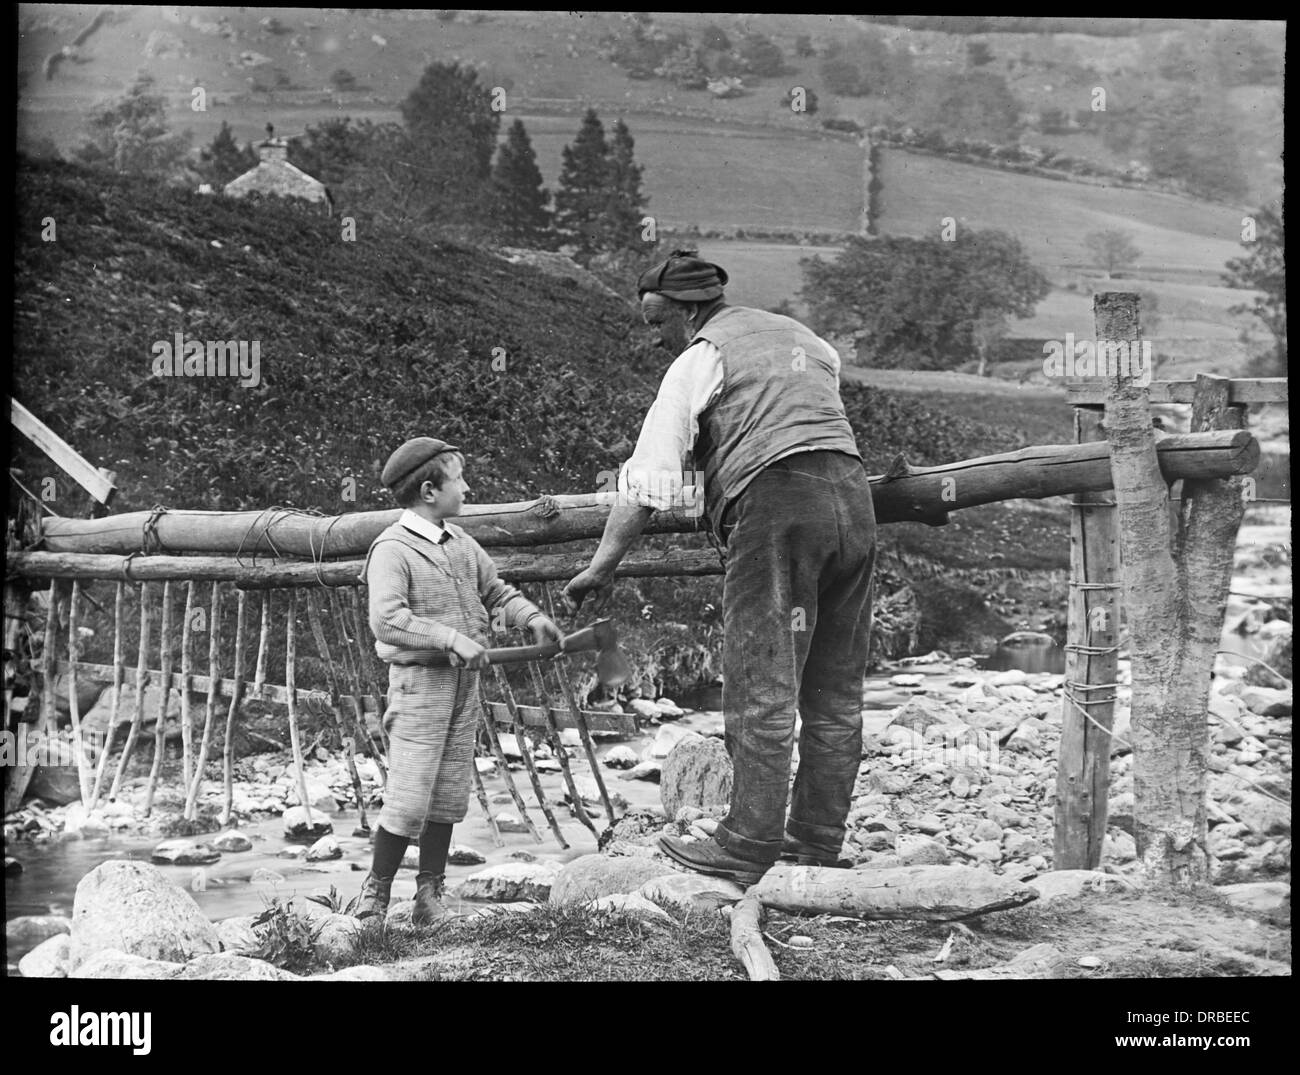 Man and a boy repairing a stream fence, taken around 1906. Langdale, Lake District, Cumbria (then Westmorland), England. The photograph is unattributed, but is probably by the well-known photographer Percy Lund. - Stock Image